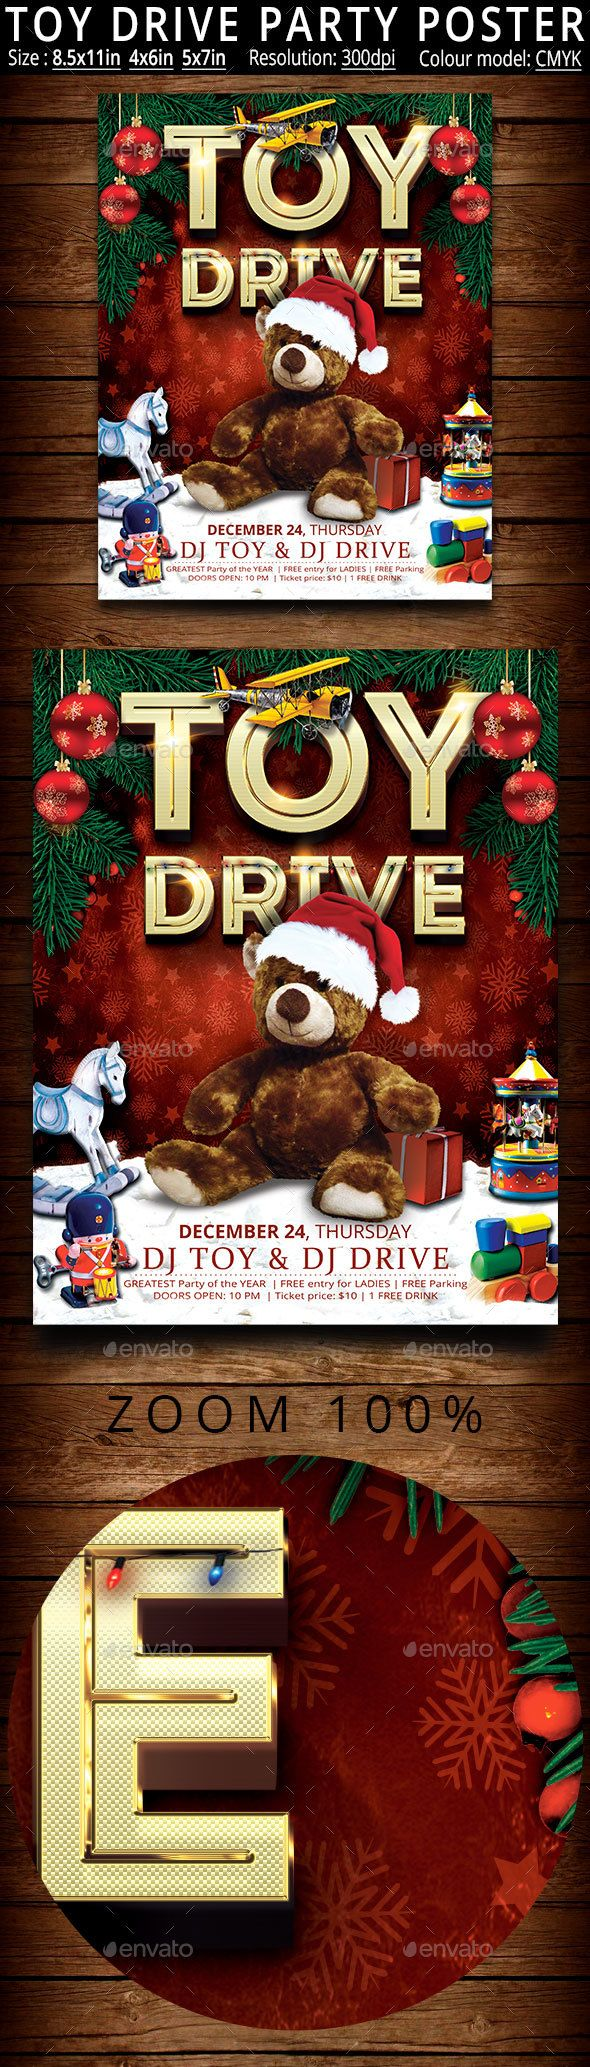 company christmas party invitation templates%0A Toy Drive Party Poster